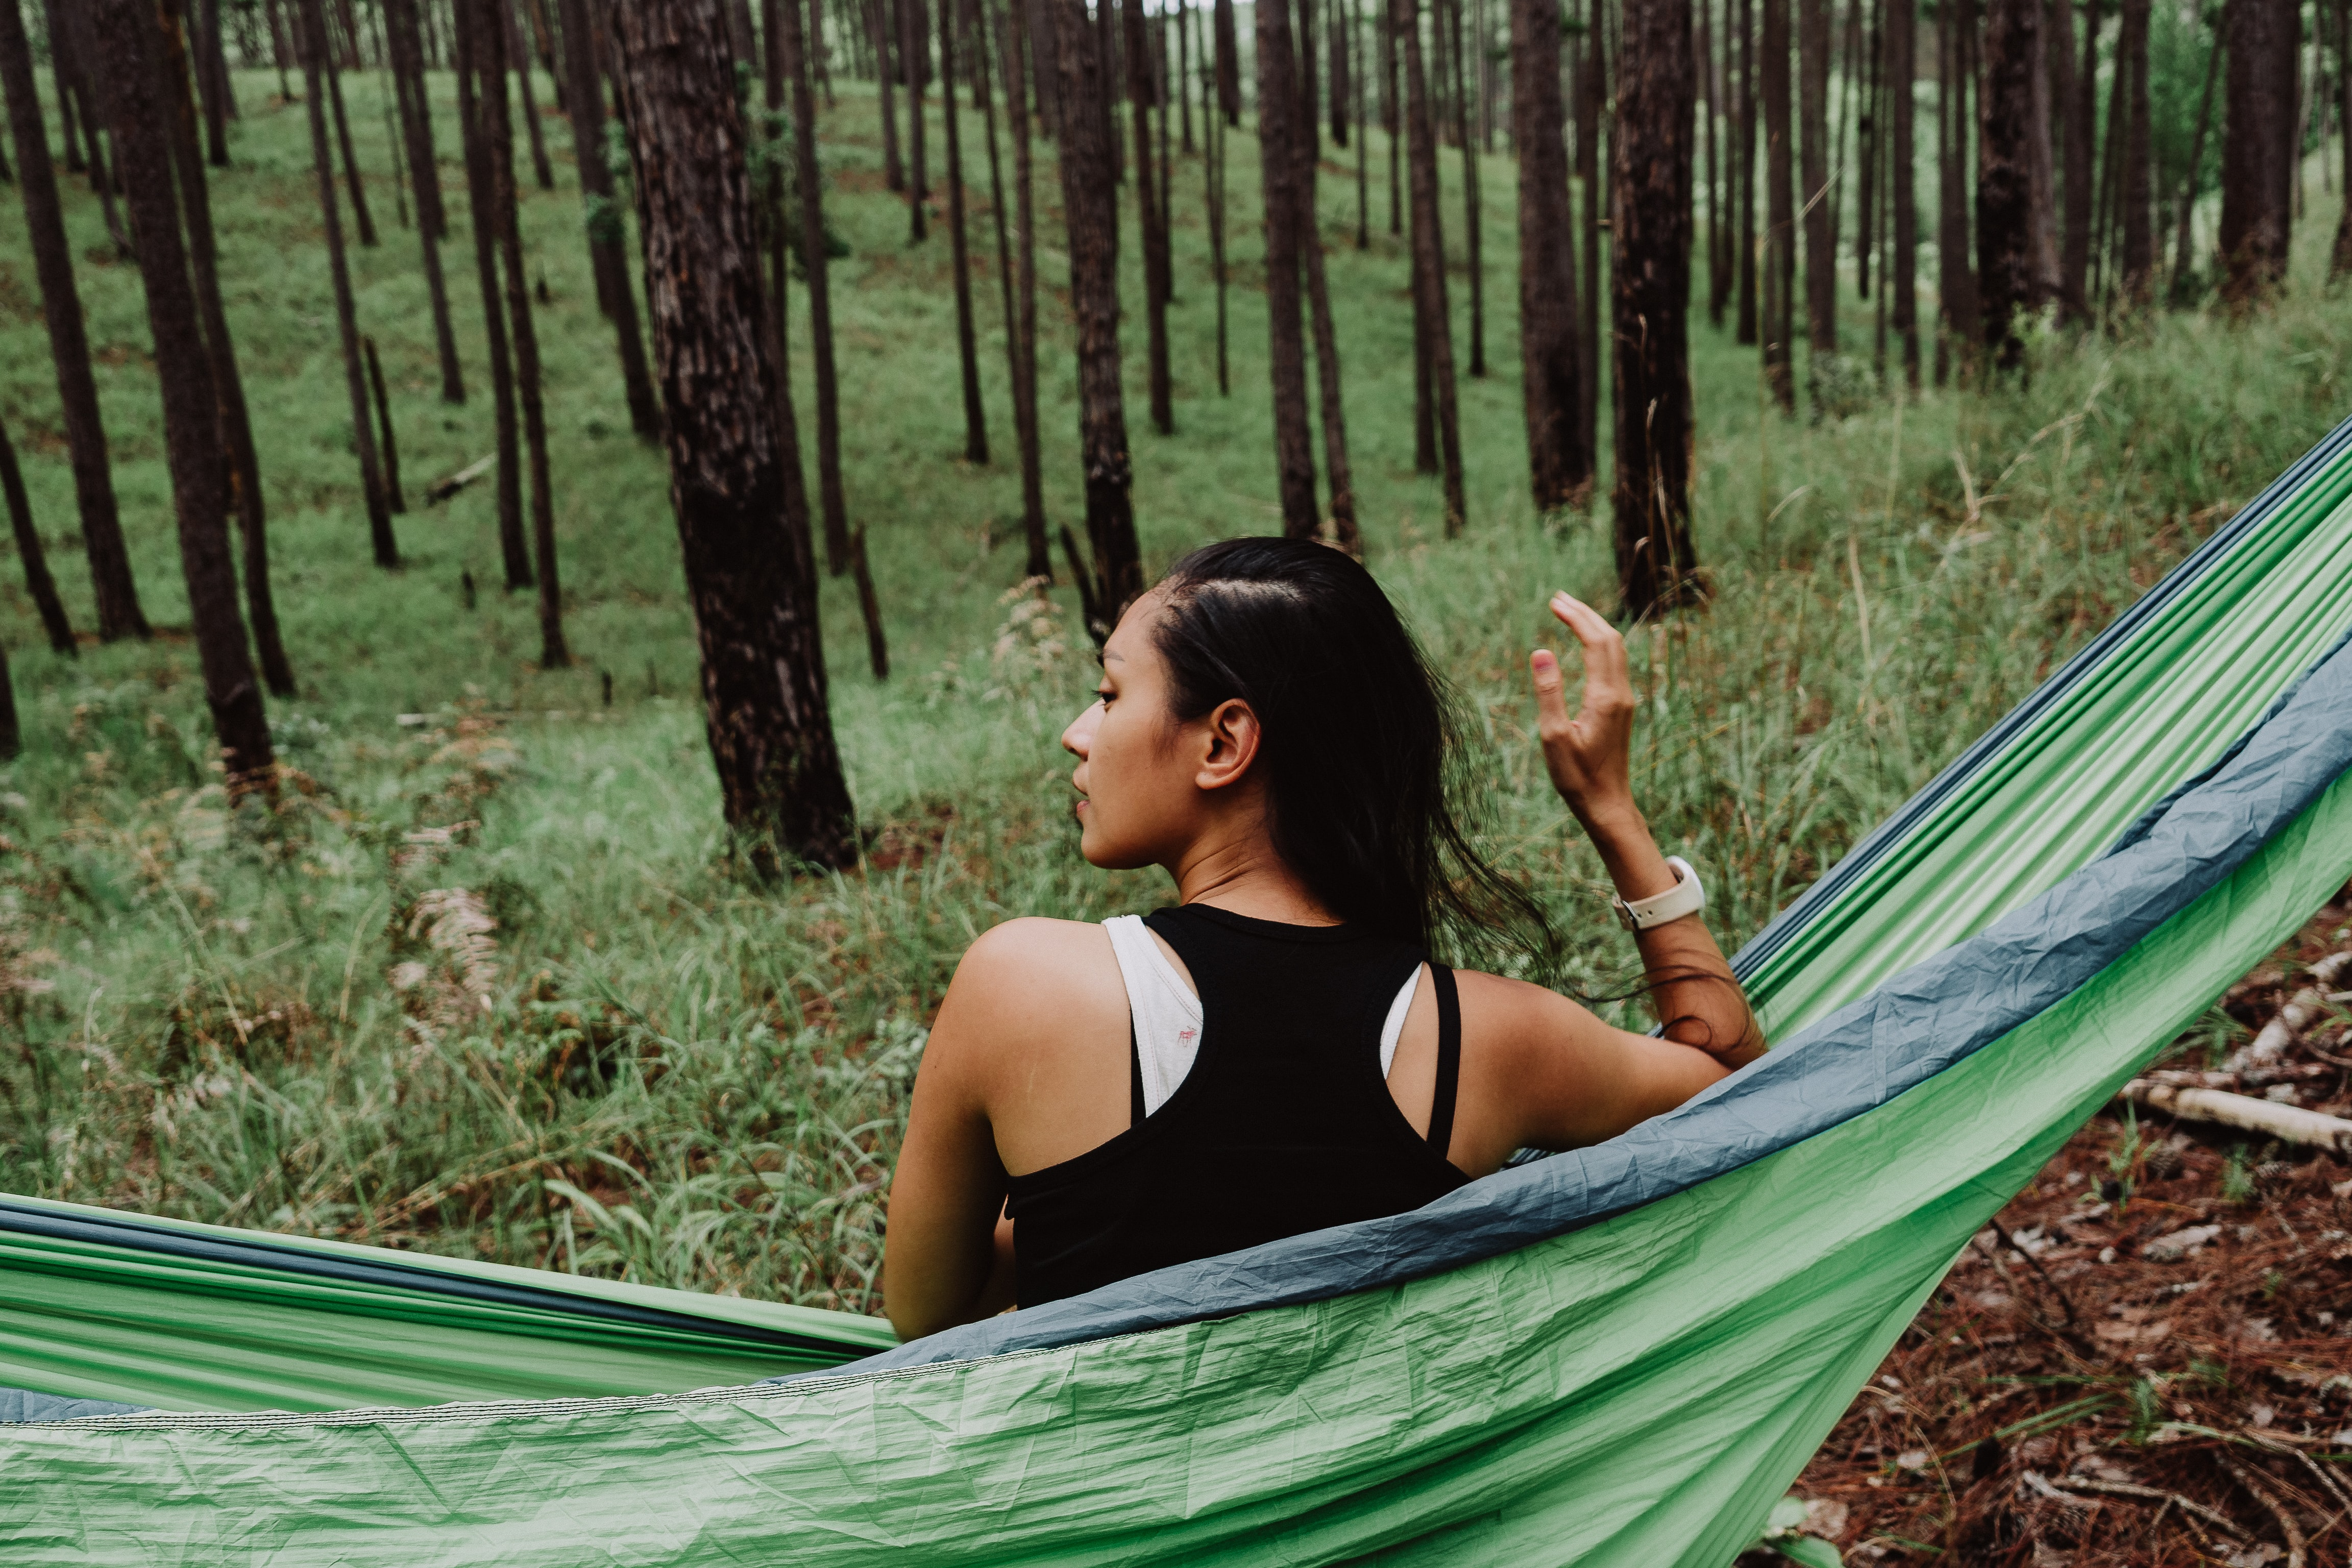 A young woman on a hammock in a forest in Dalat